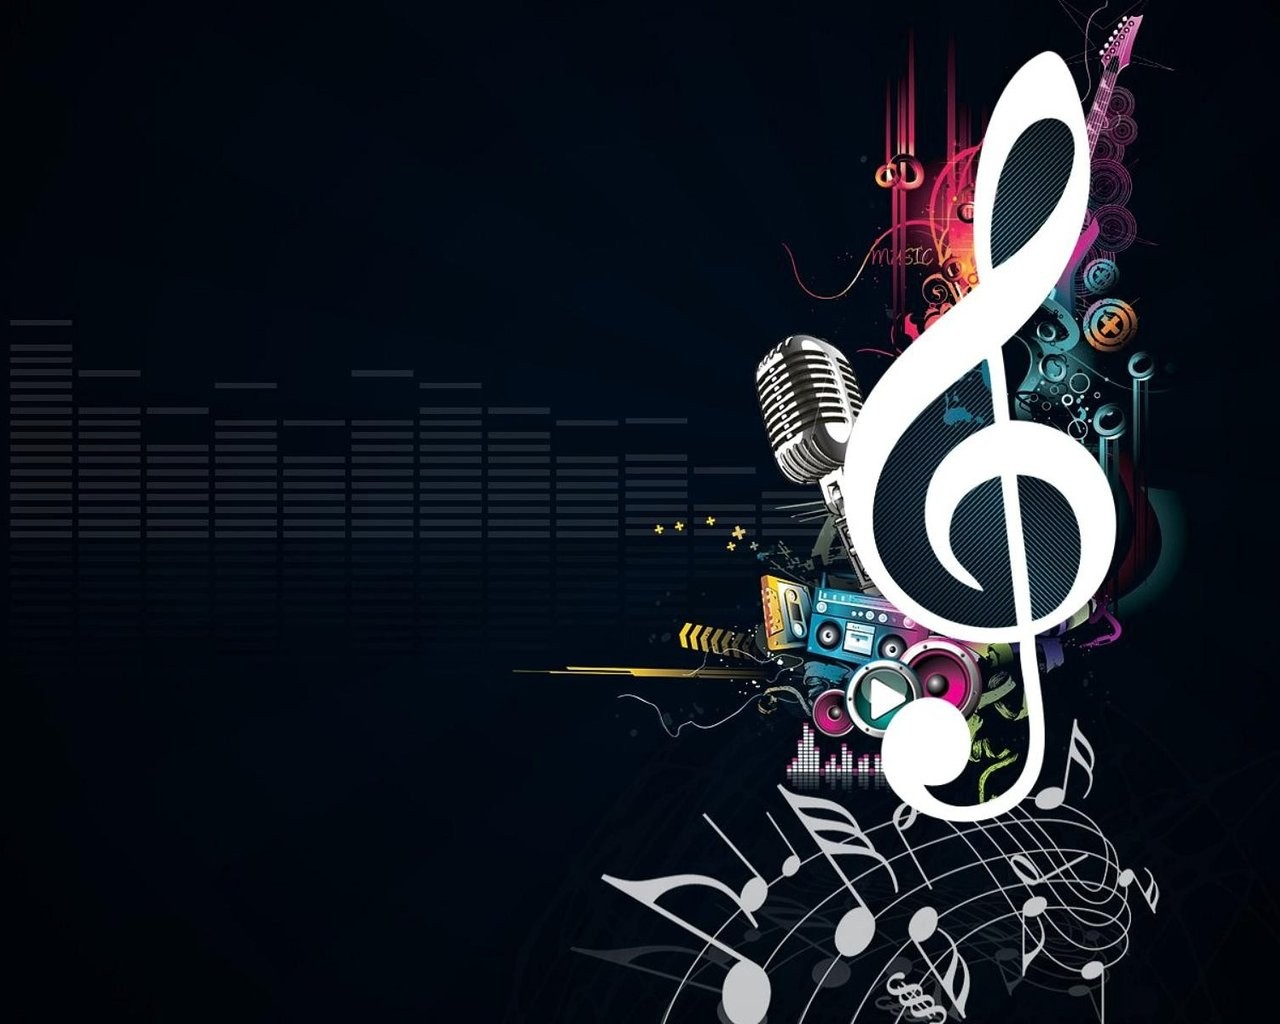 19 Cool Music Background Designs Images